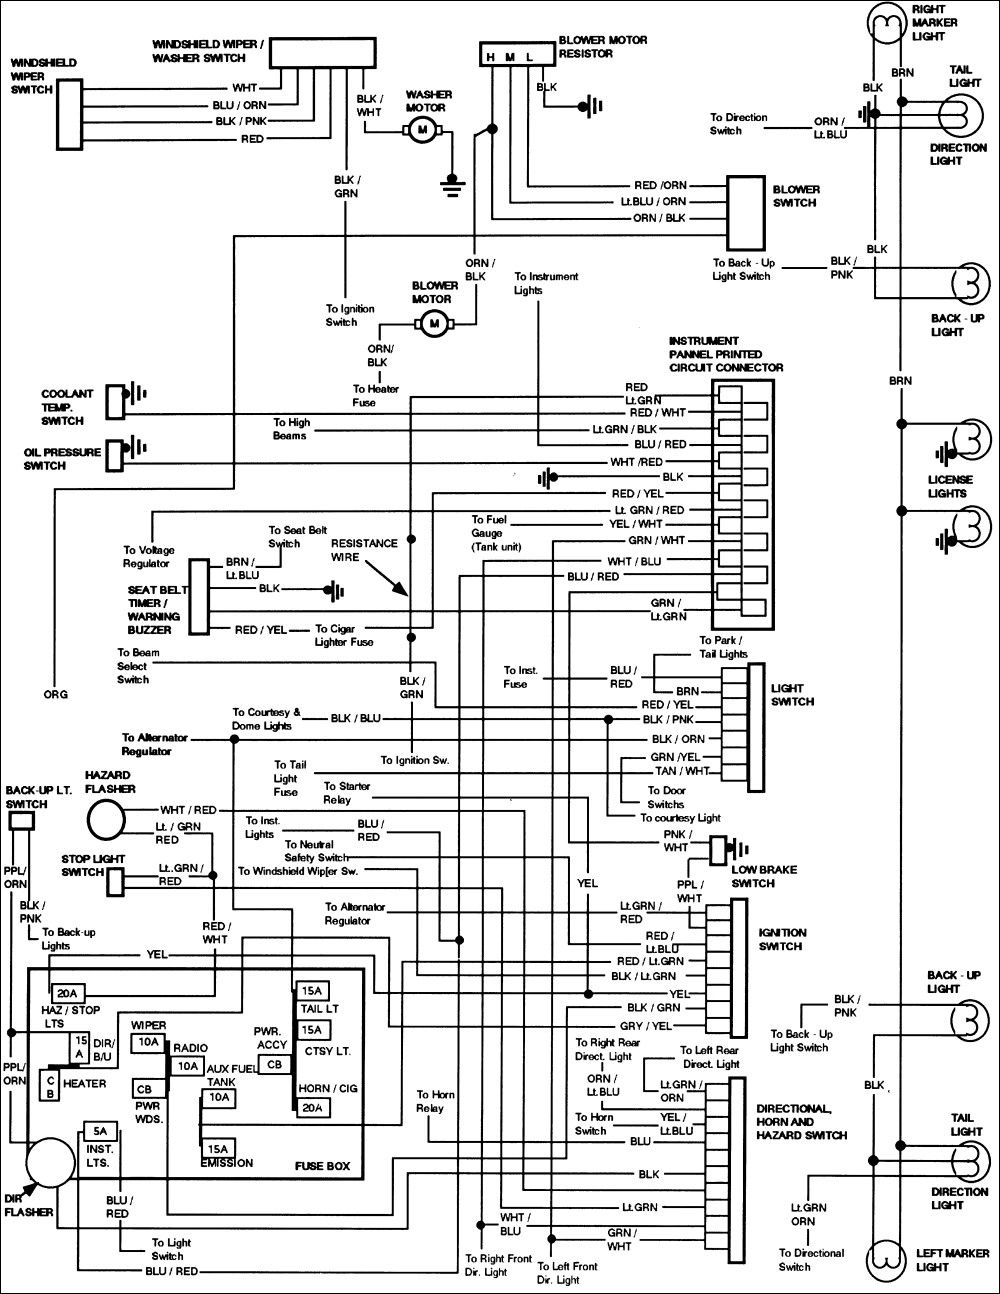 2001 Ford F150 Wiring Diagram 3 Ford ranger, Ford f150